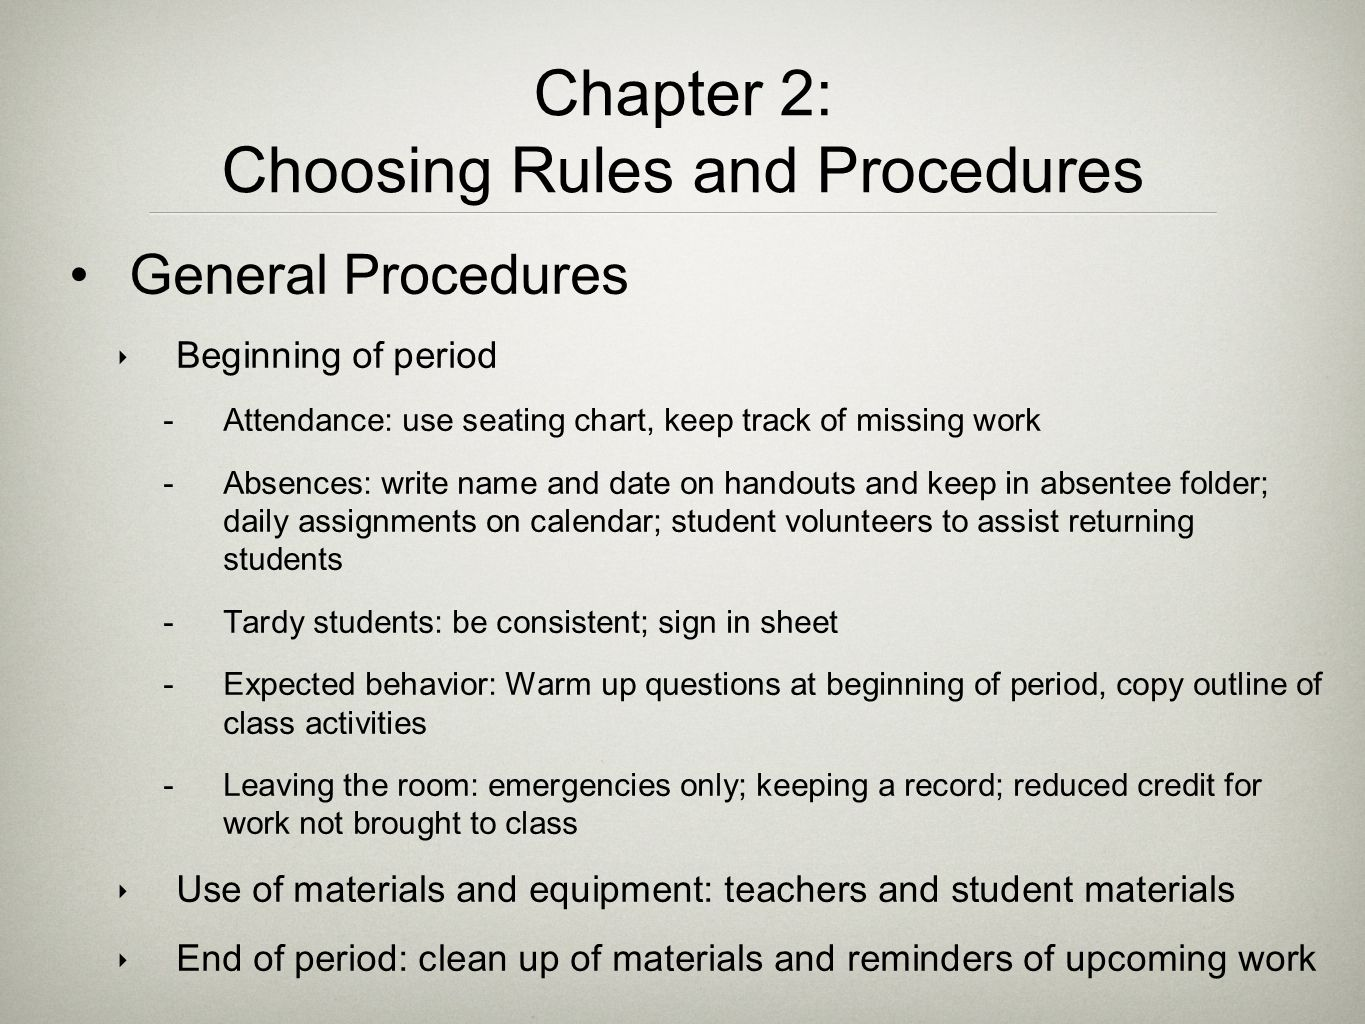 Choosing Rules and Procedures